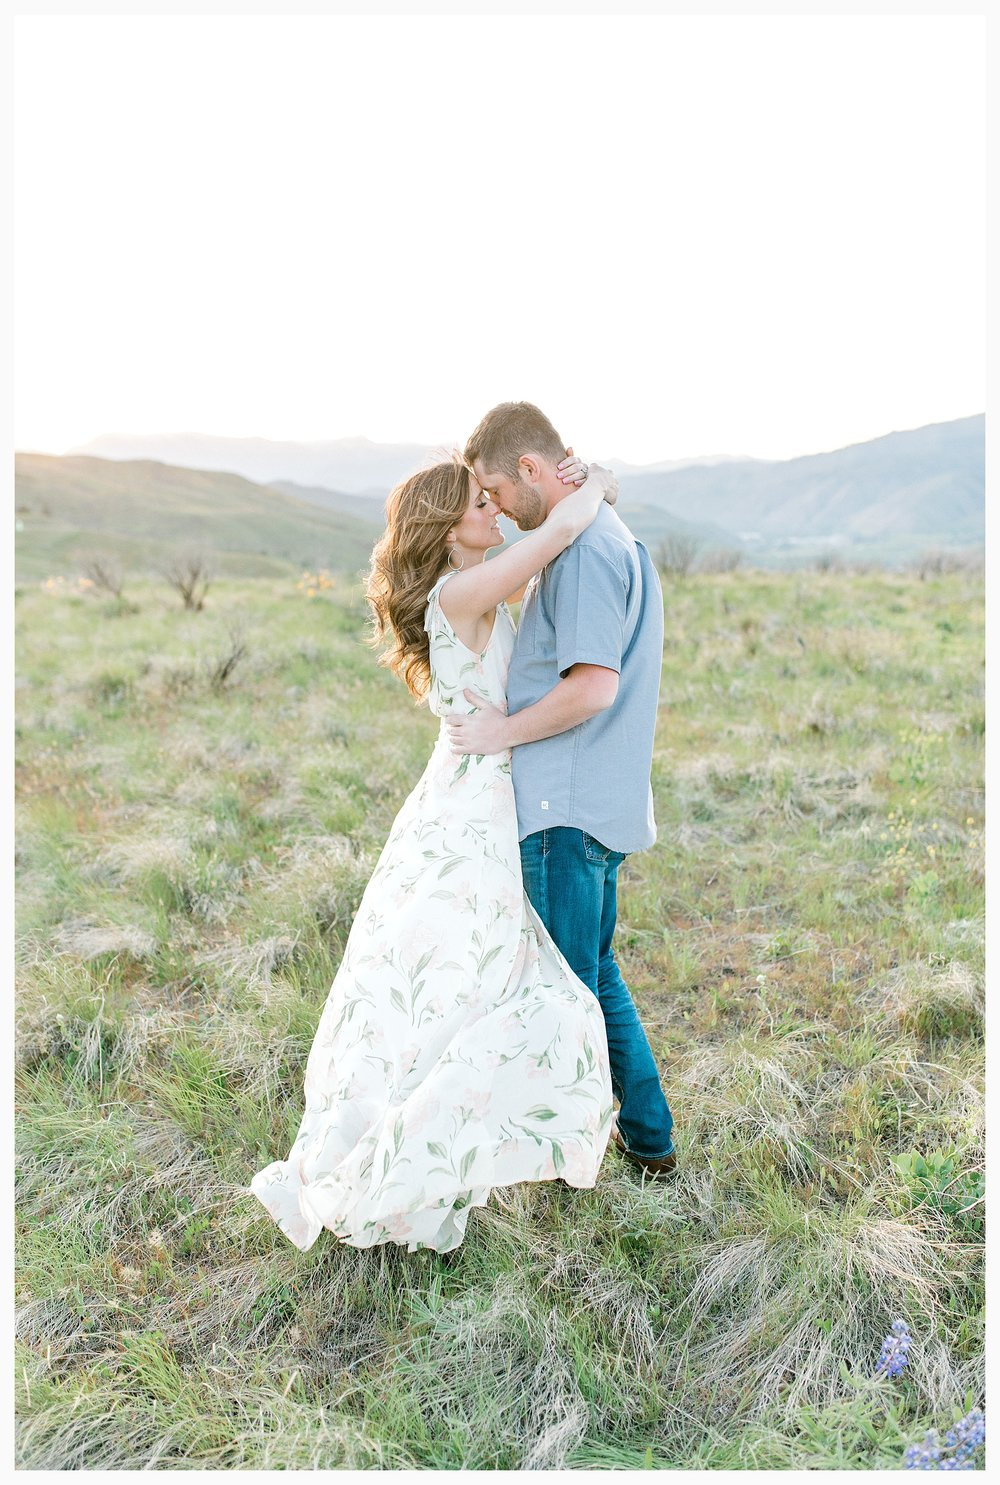 Engagement session amongst the wildflowers in Wenatchee, Washington | Engagement Session Outfit Inspiration for Wedding Photography with Emma Rose Company | Light and Airy PNW Photographer, Seattle Bride_0025.jpg